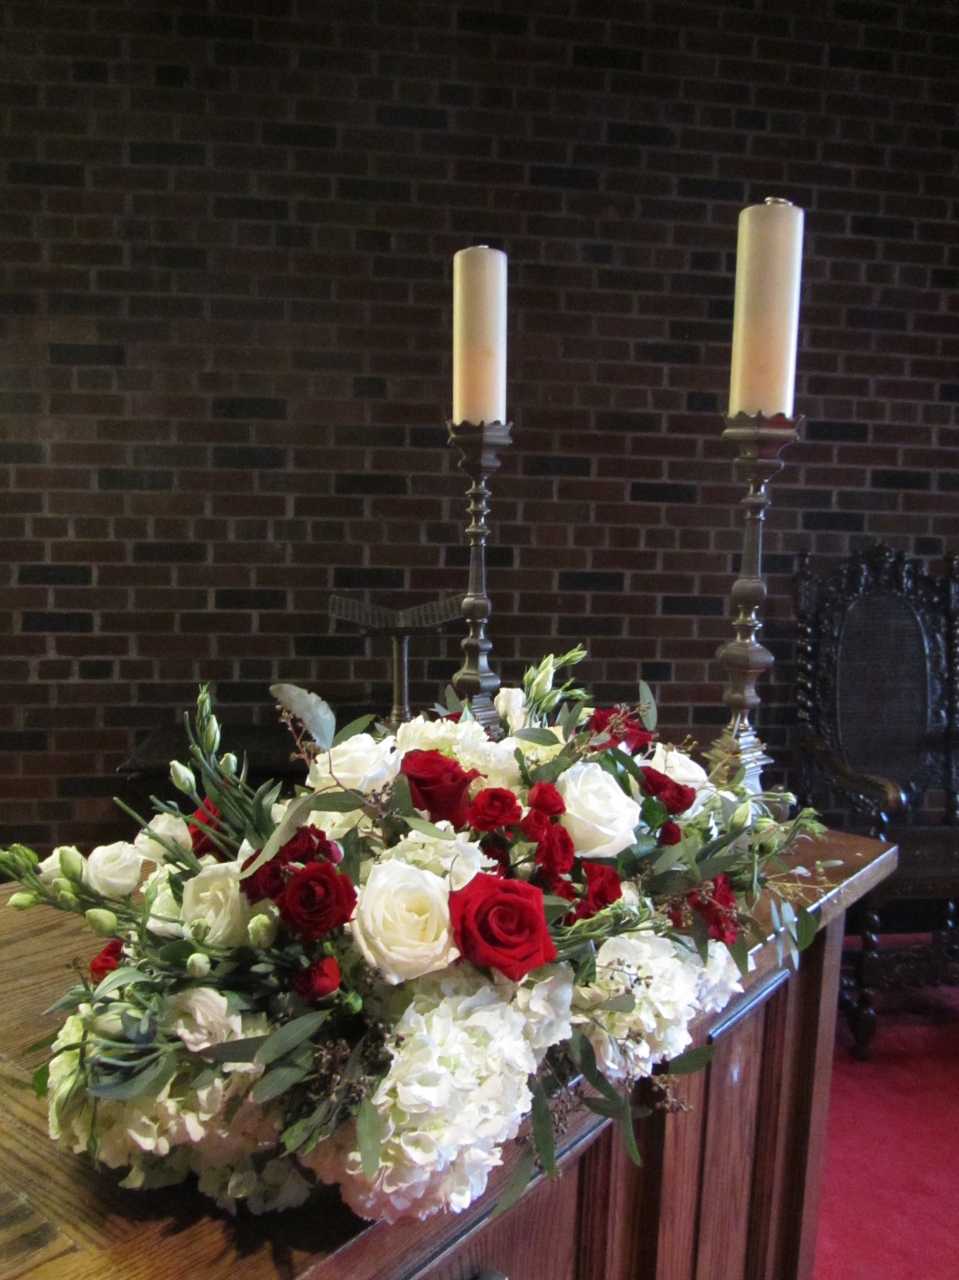 White, red and greenery altar flowers